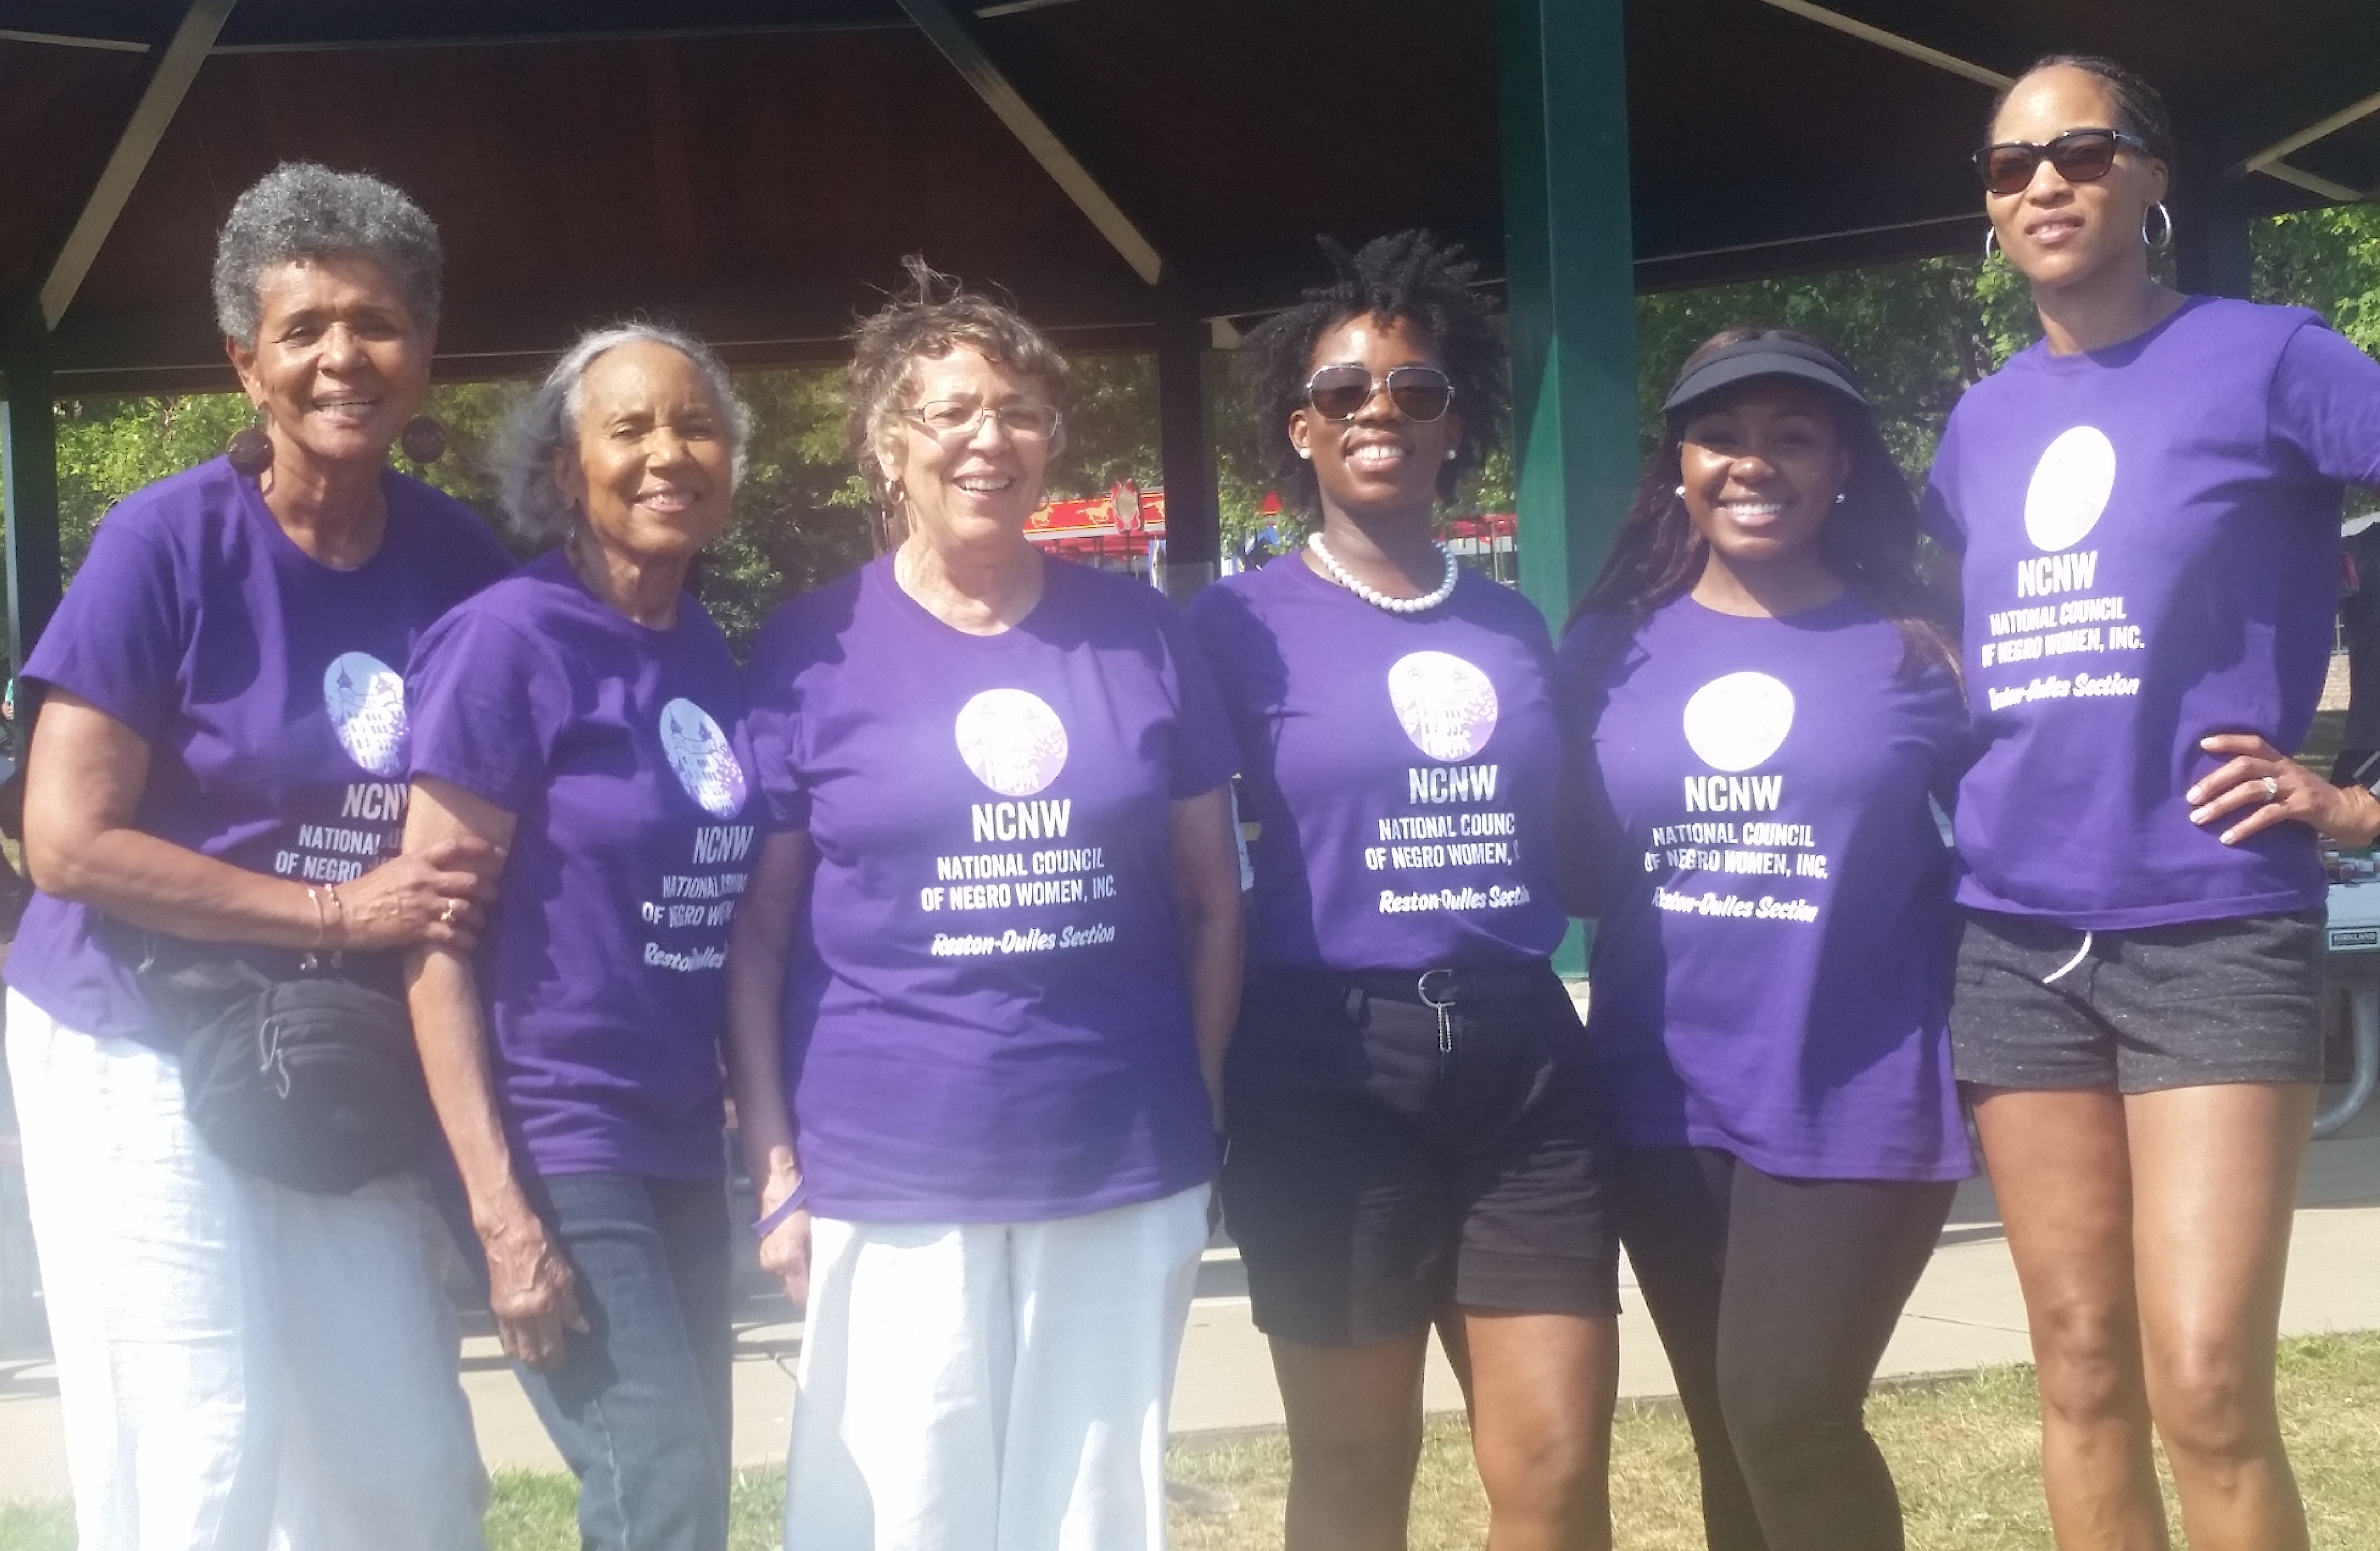 90972e71e Custom T-Shirts for Reston Dulles Ncnw, Black Family Reunion - Shirt ...